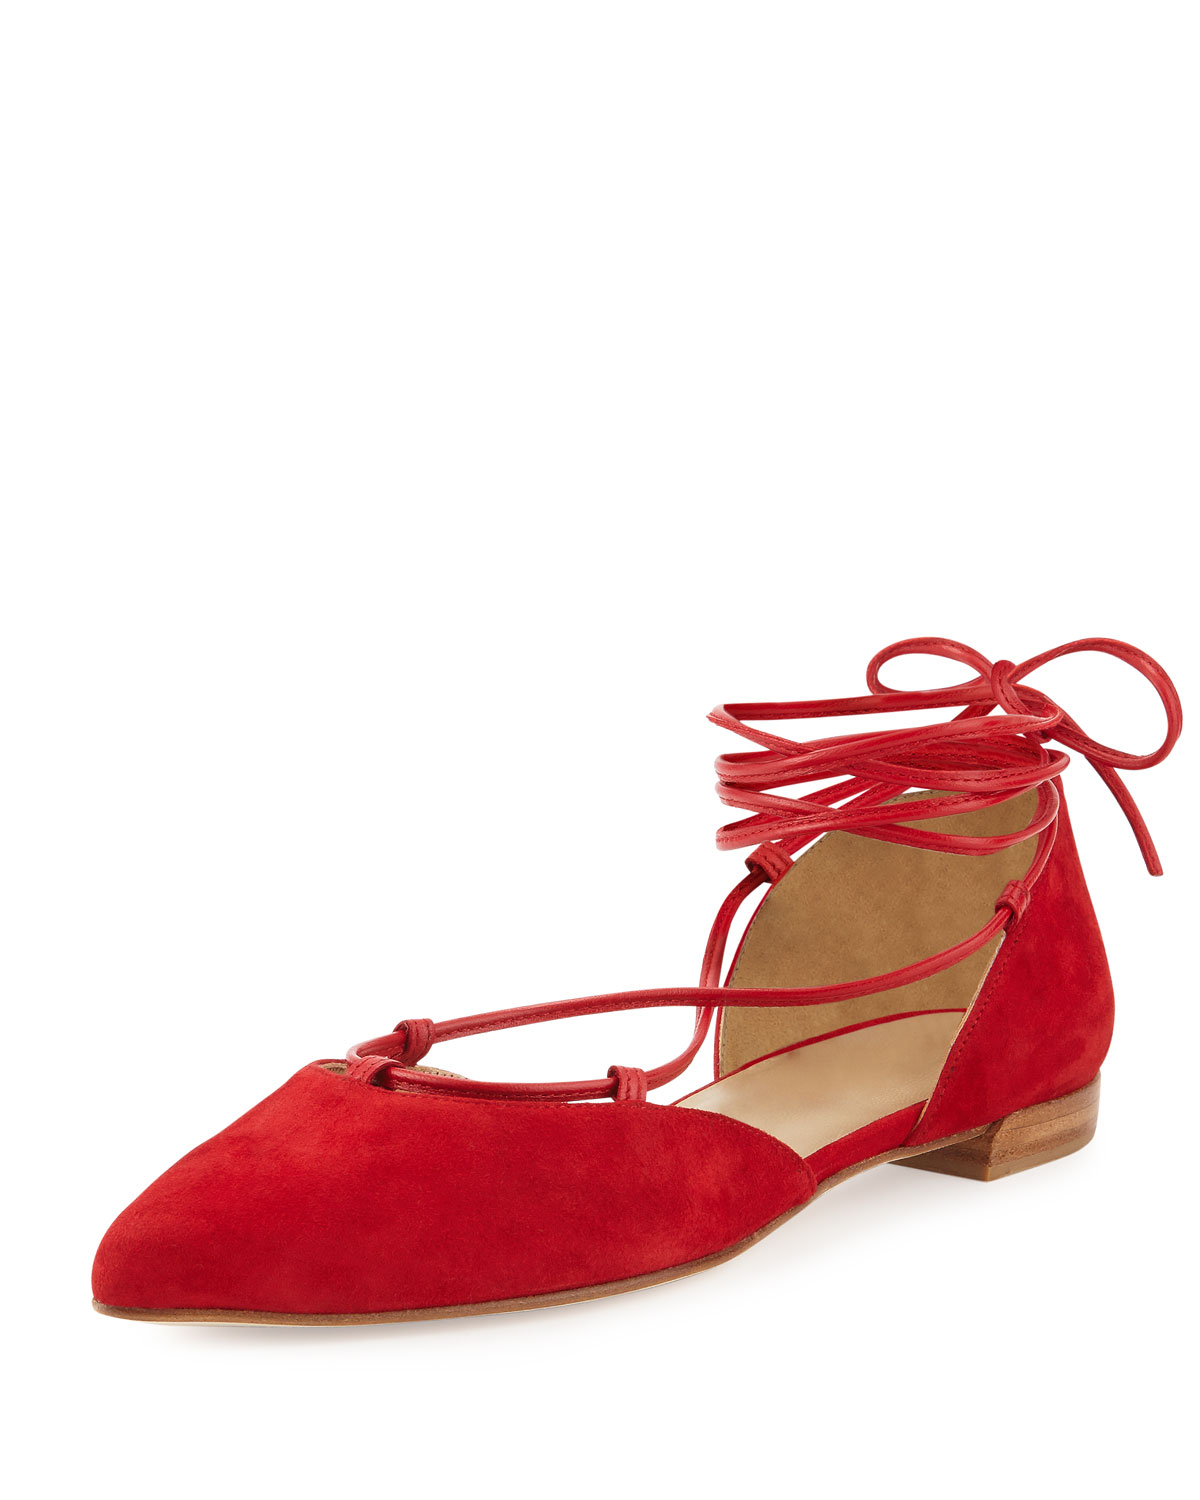 Gilligan Lace-Up d'Orsay Flat, Red, Women's, Size: 35.5B/5.5B - Stuart Weitzman